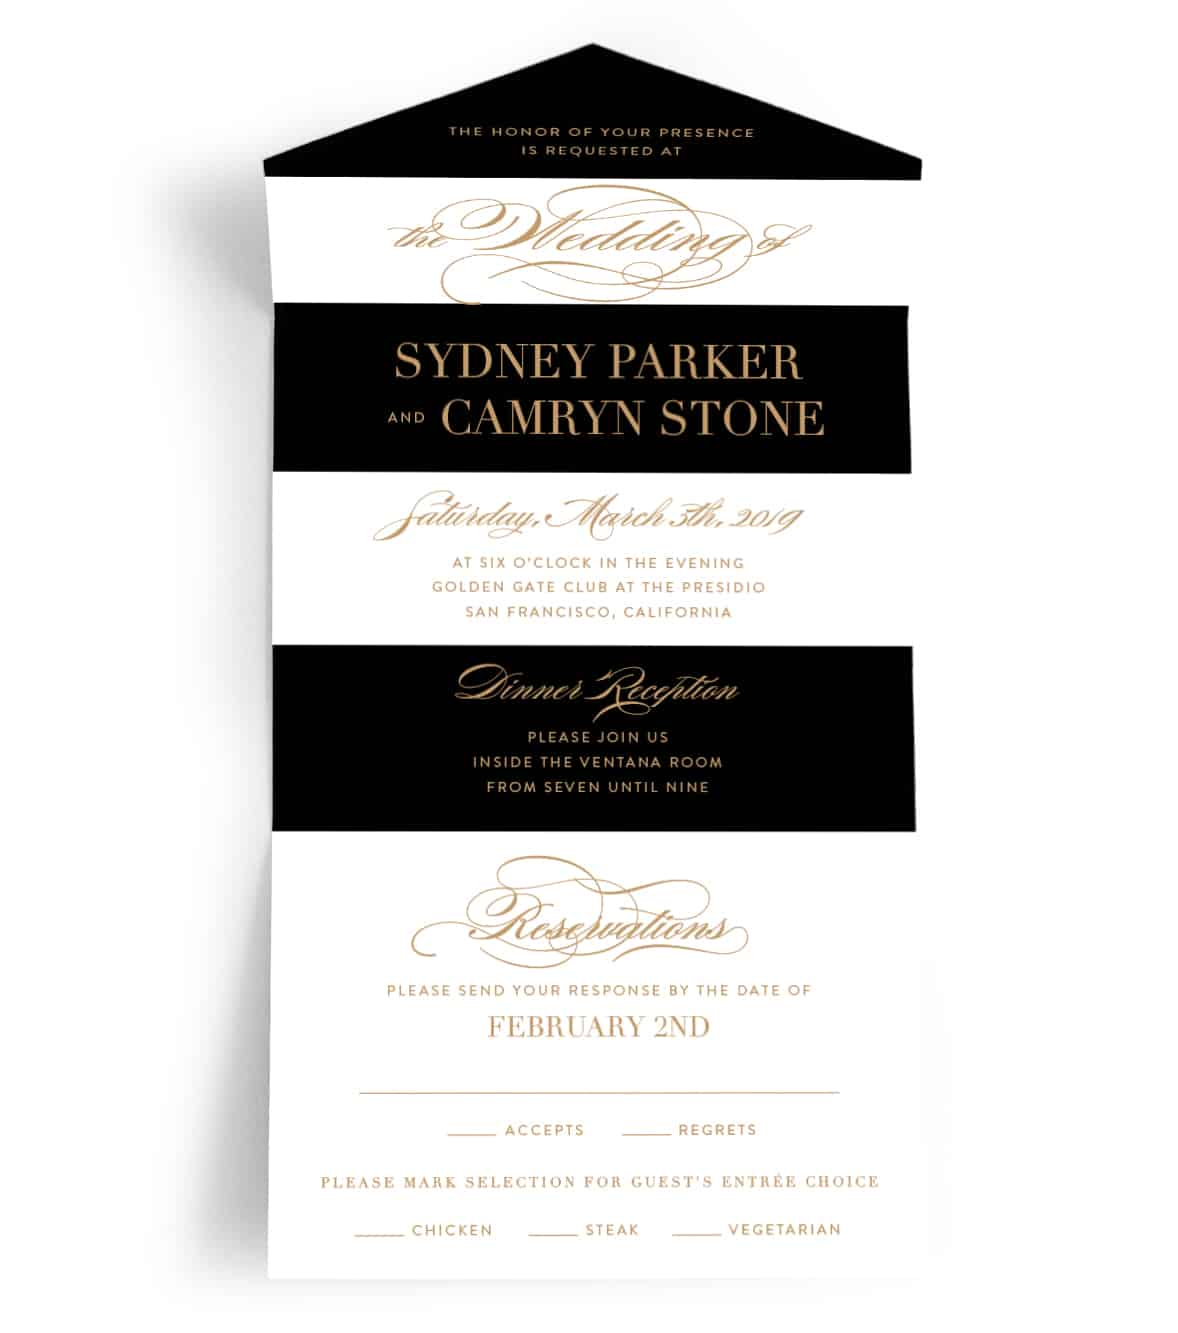 Stylized Beach One Wedding Invitations One Wedding Invitations Wedding Invitation From Minted Most Inexpensive Rsvp All Efficient Wedding Invitations Ever All wedding All In One Wedding Invitations